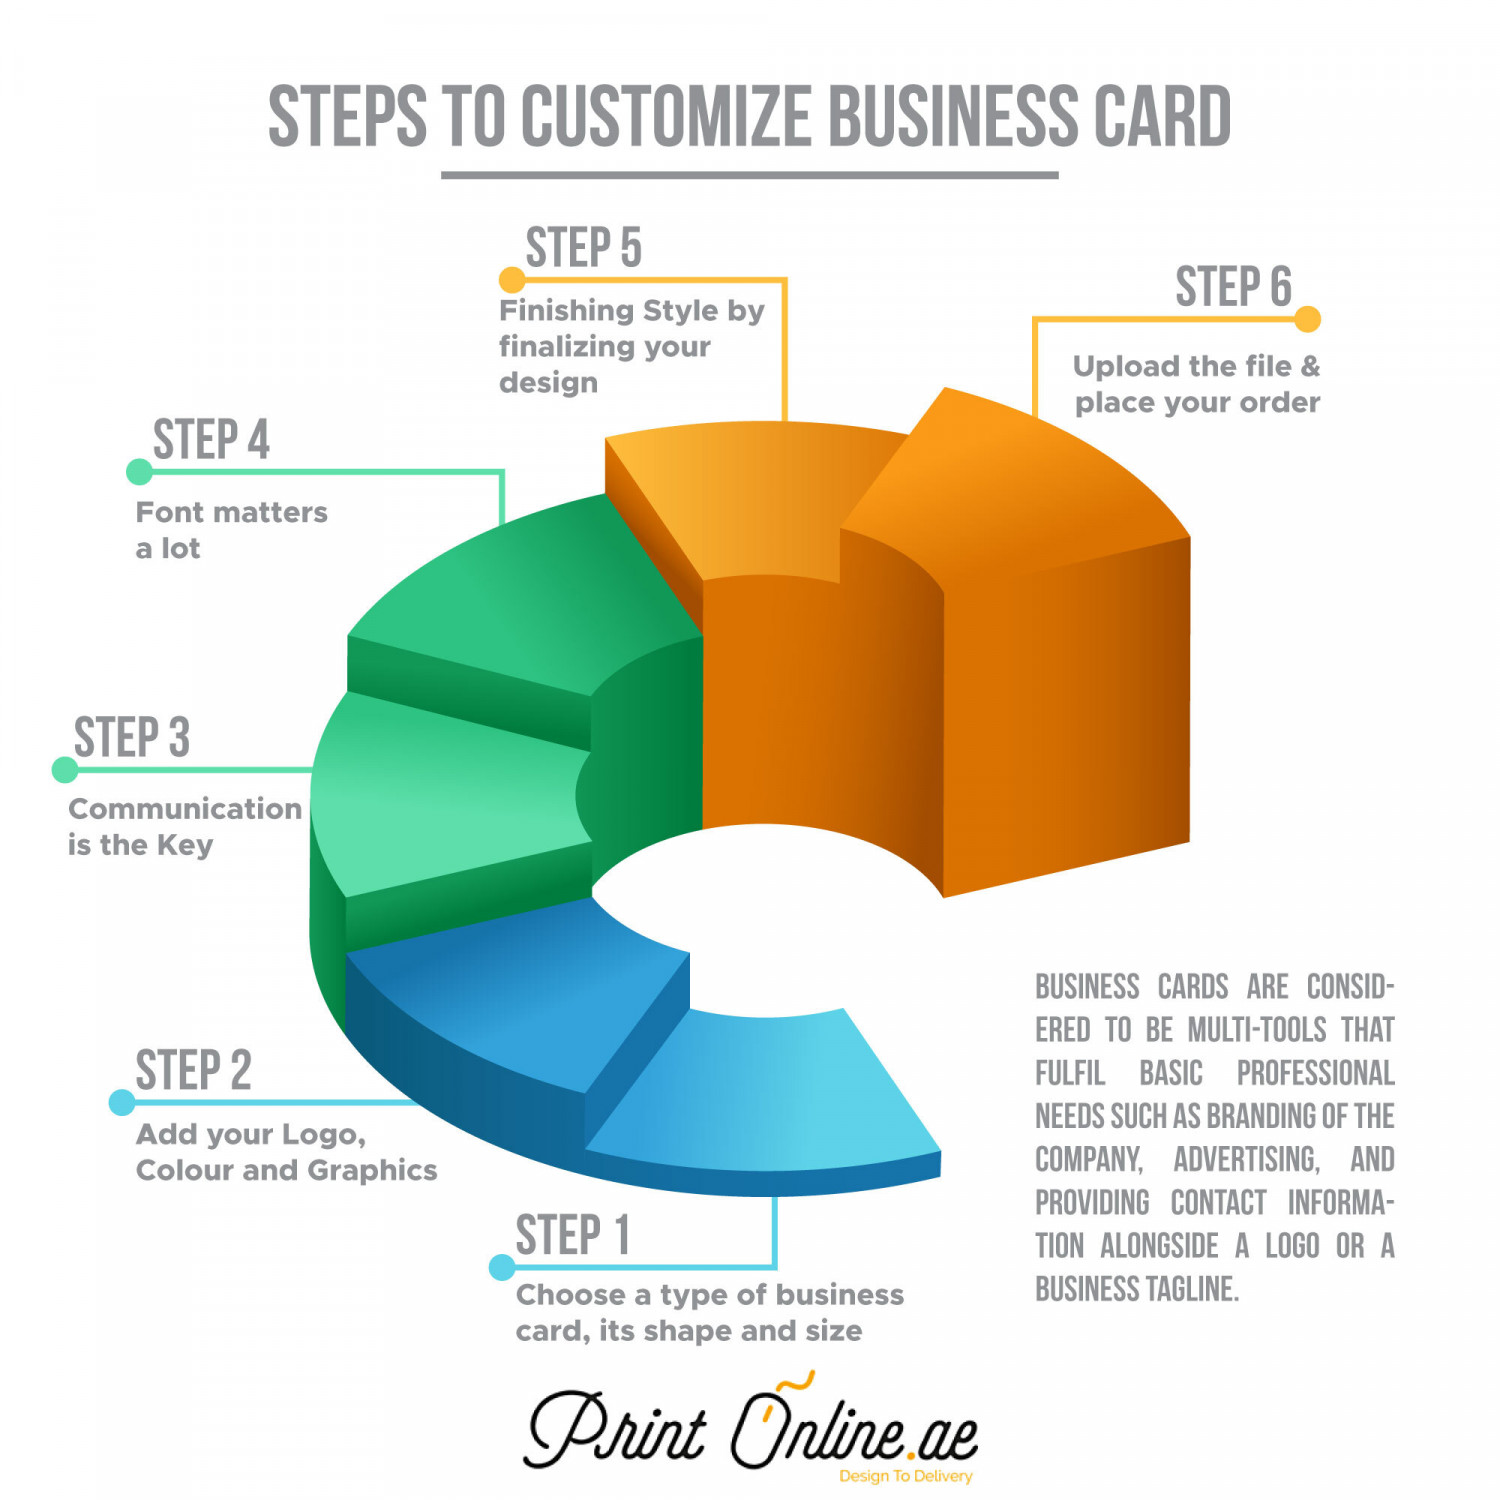 Steps Customize Your Business Card Infographic